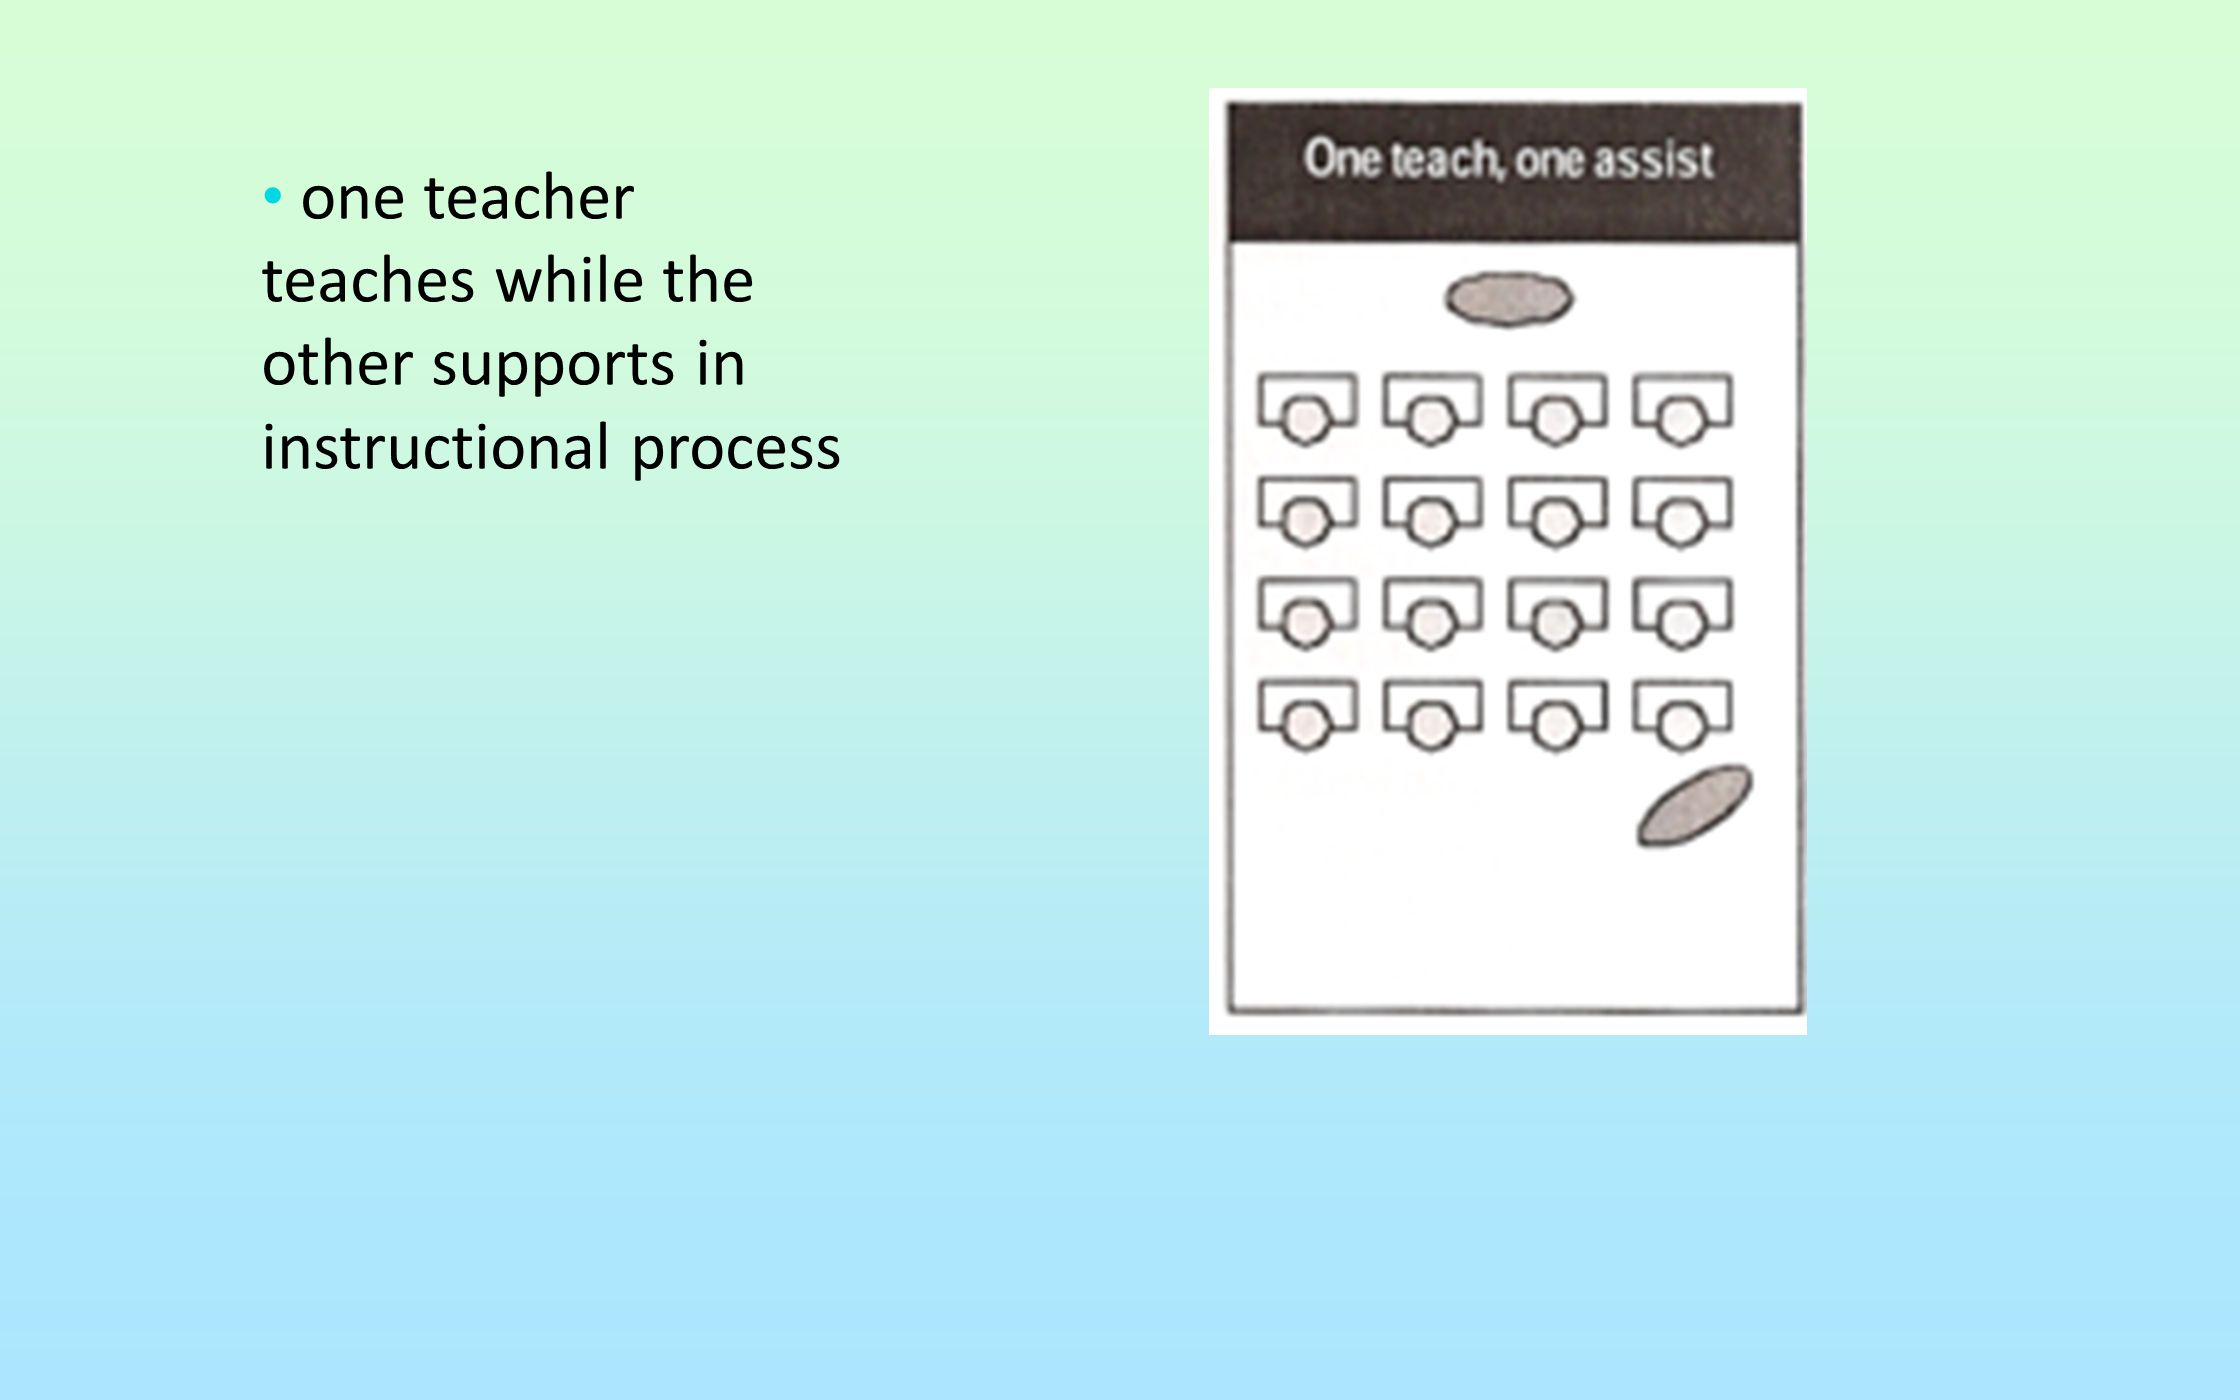 one teacher teaches while the other supports in instructional process